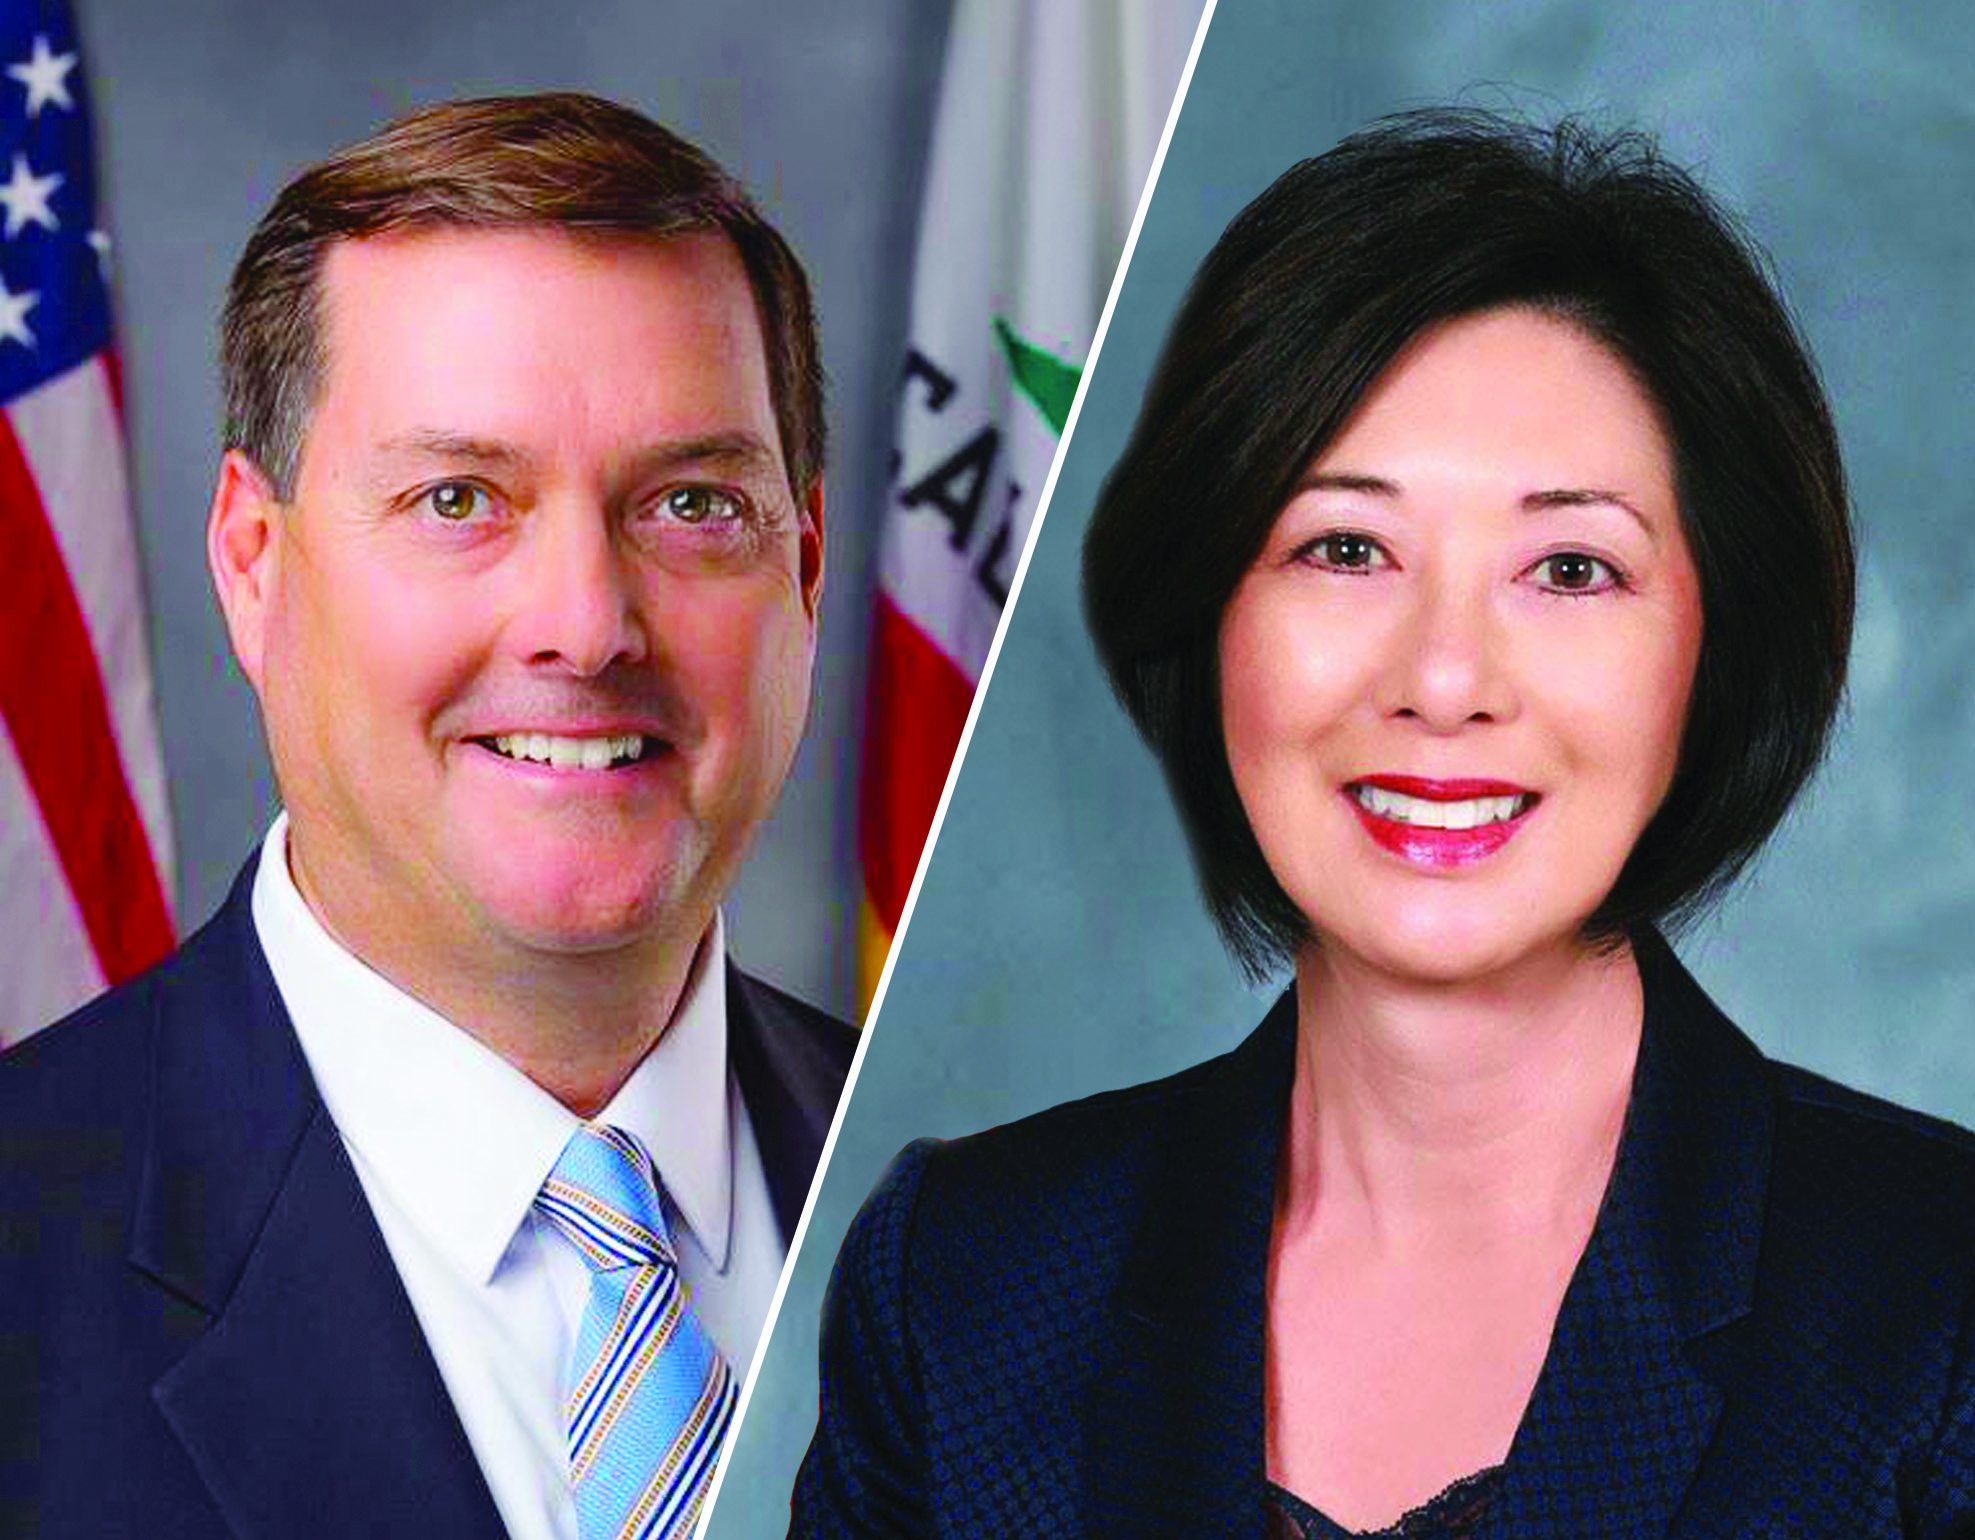 Assemblymember Bill Brough is currently facing accusations of sexual misconduct from a handful of women, including Orange County Supervisor Lisa Bartlett. Photos: Courtesy of the offices of Brough and Bartlett